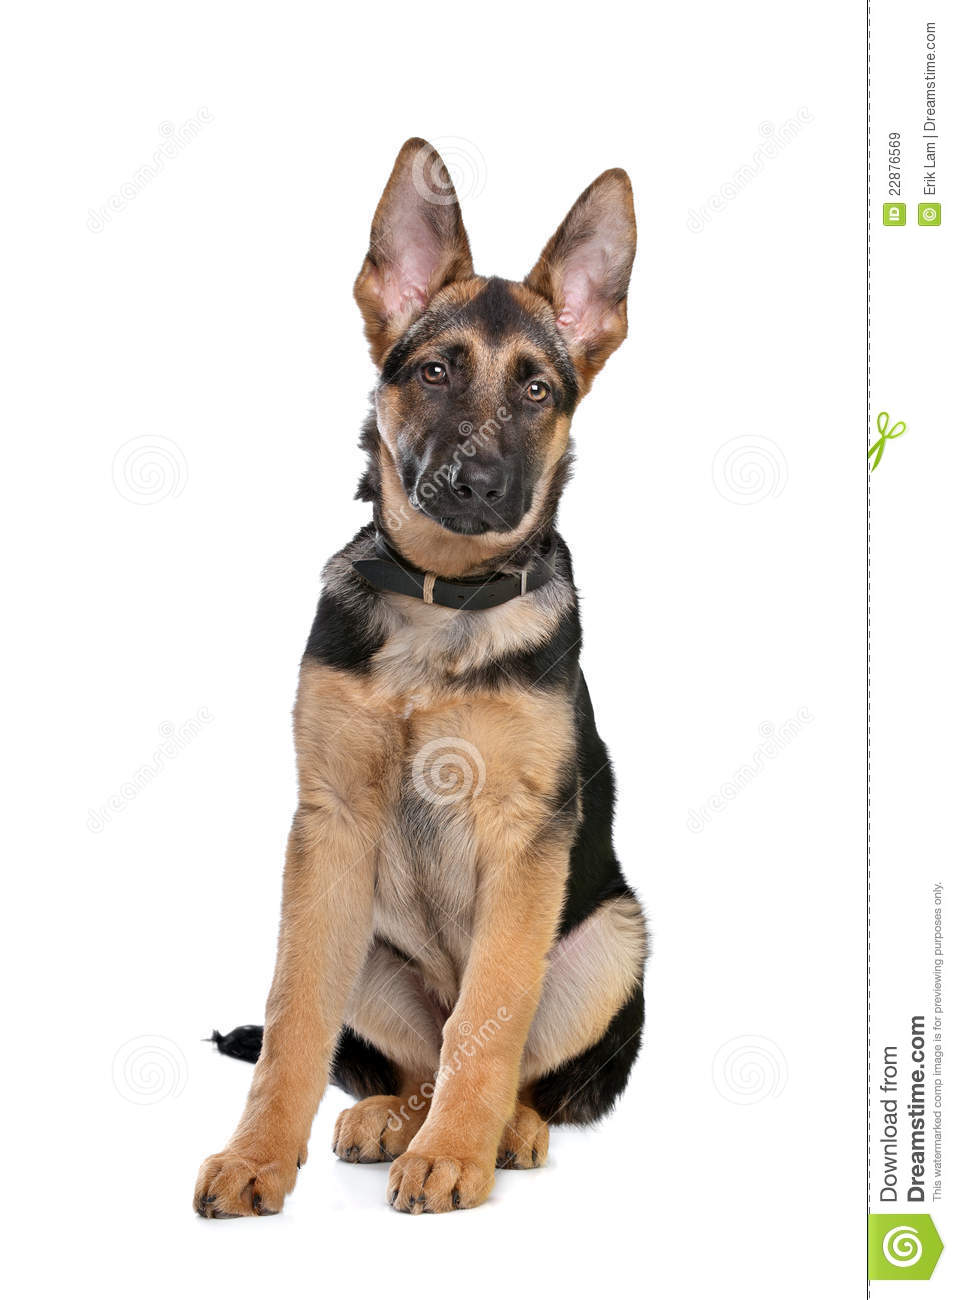 More similar stock images of ` German Shepherd puppy `